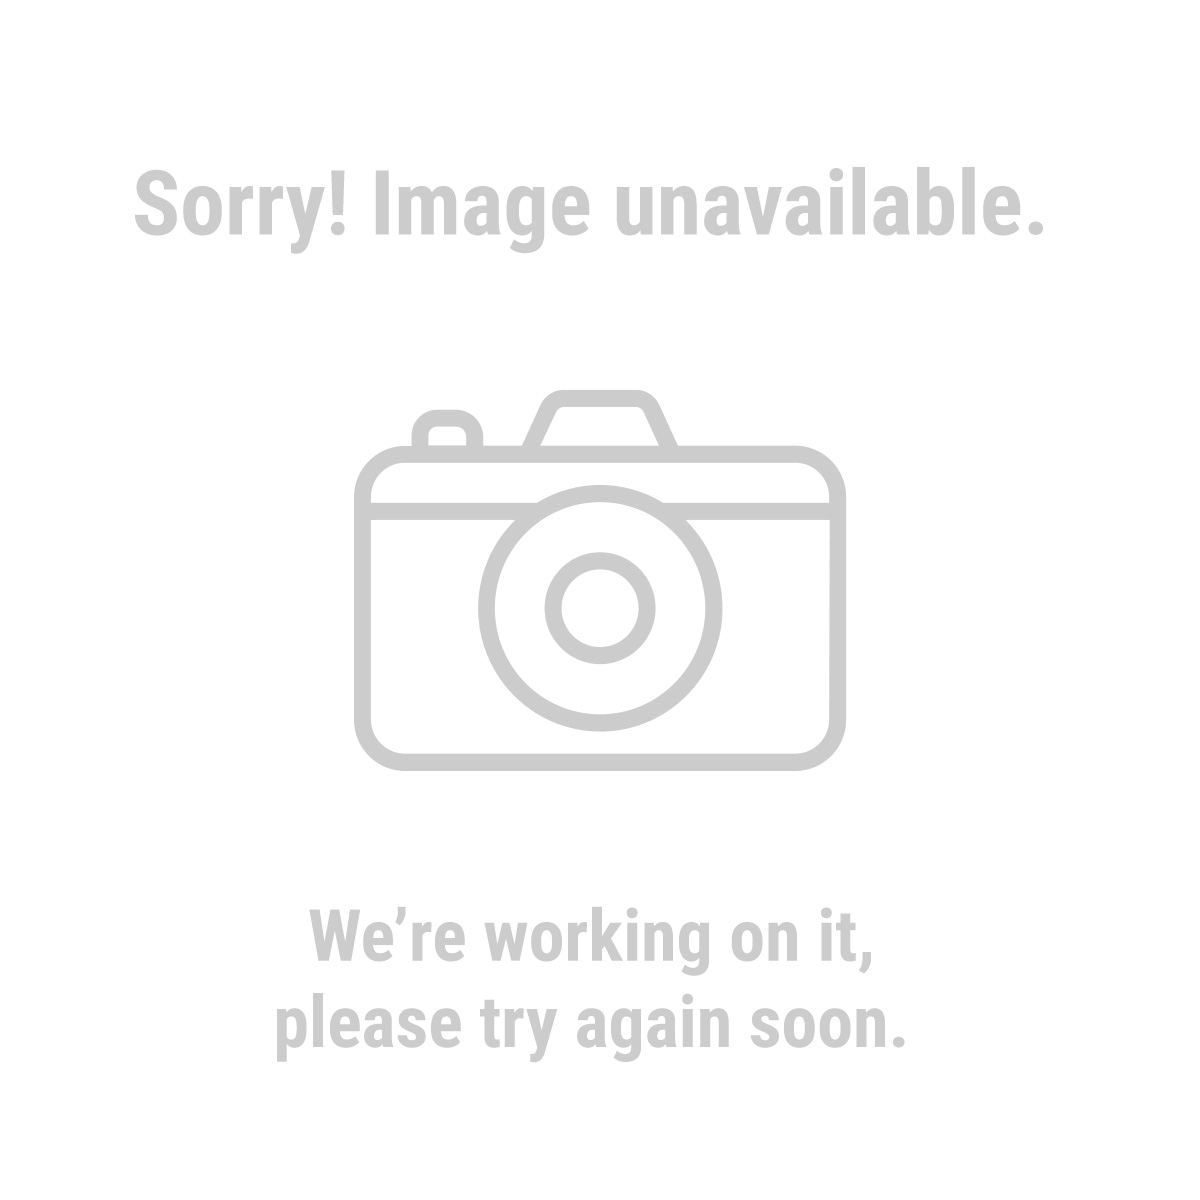 Chicago Electric Welding 61612 Auto Darkening Welding Helmet with Racing Stripe Design